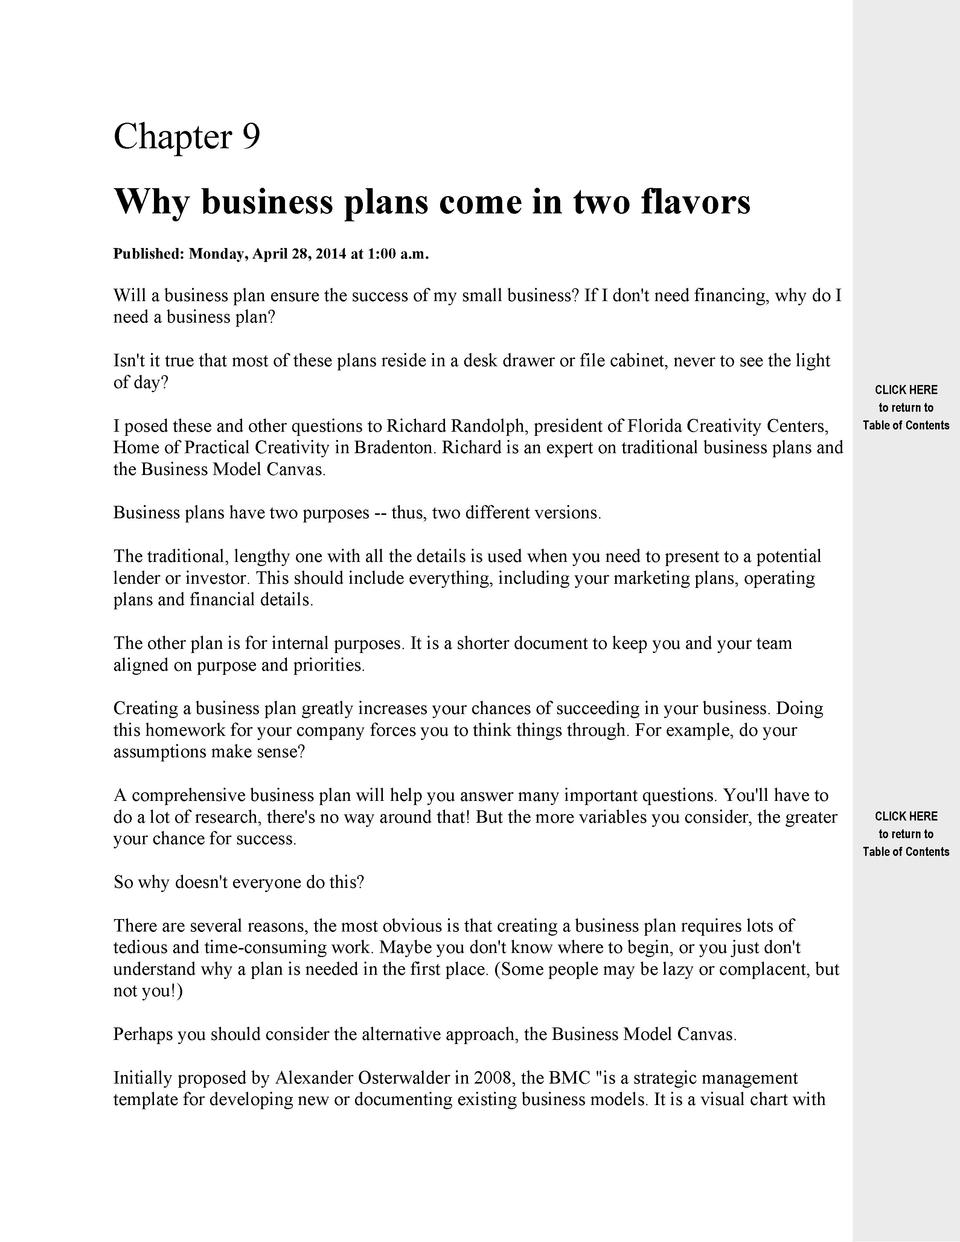 Chapter 9 Why business plans come in two flavors Published  Monday, April 28, 2014 at 1 00 a.m.  Will a business plan ensu...